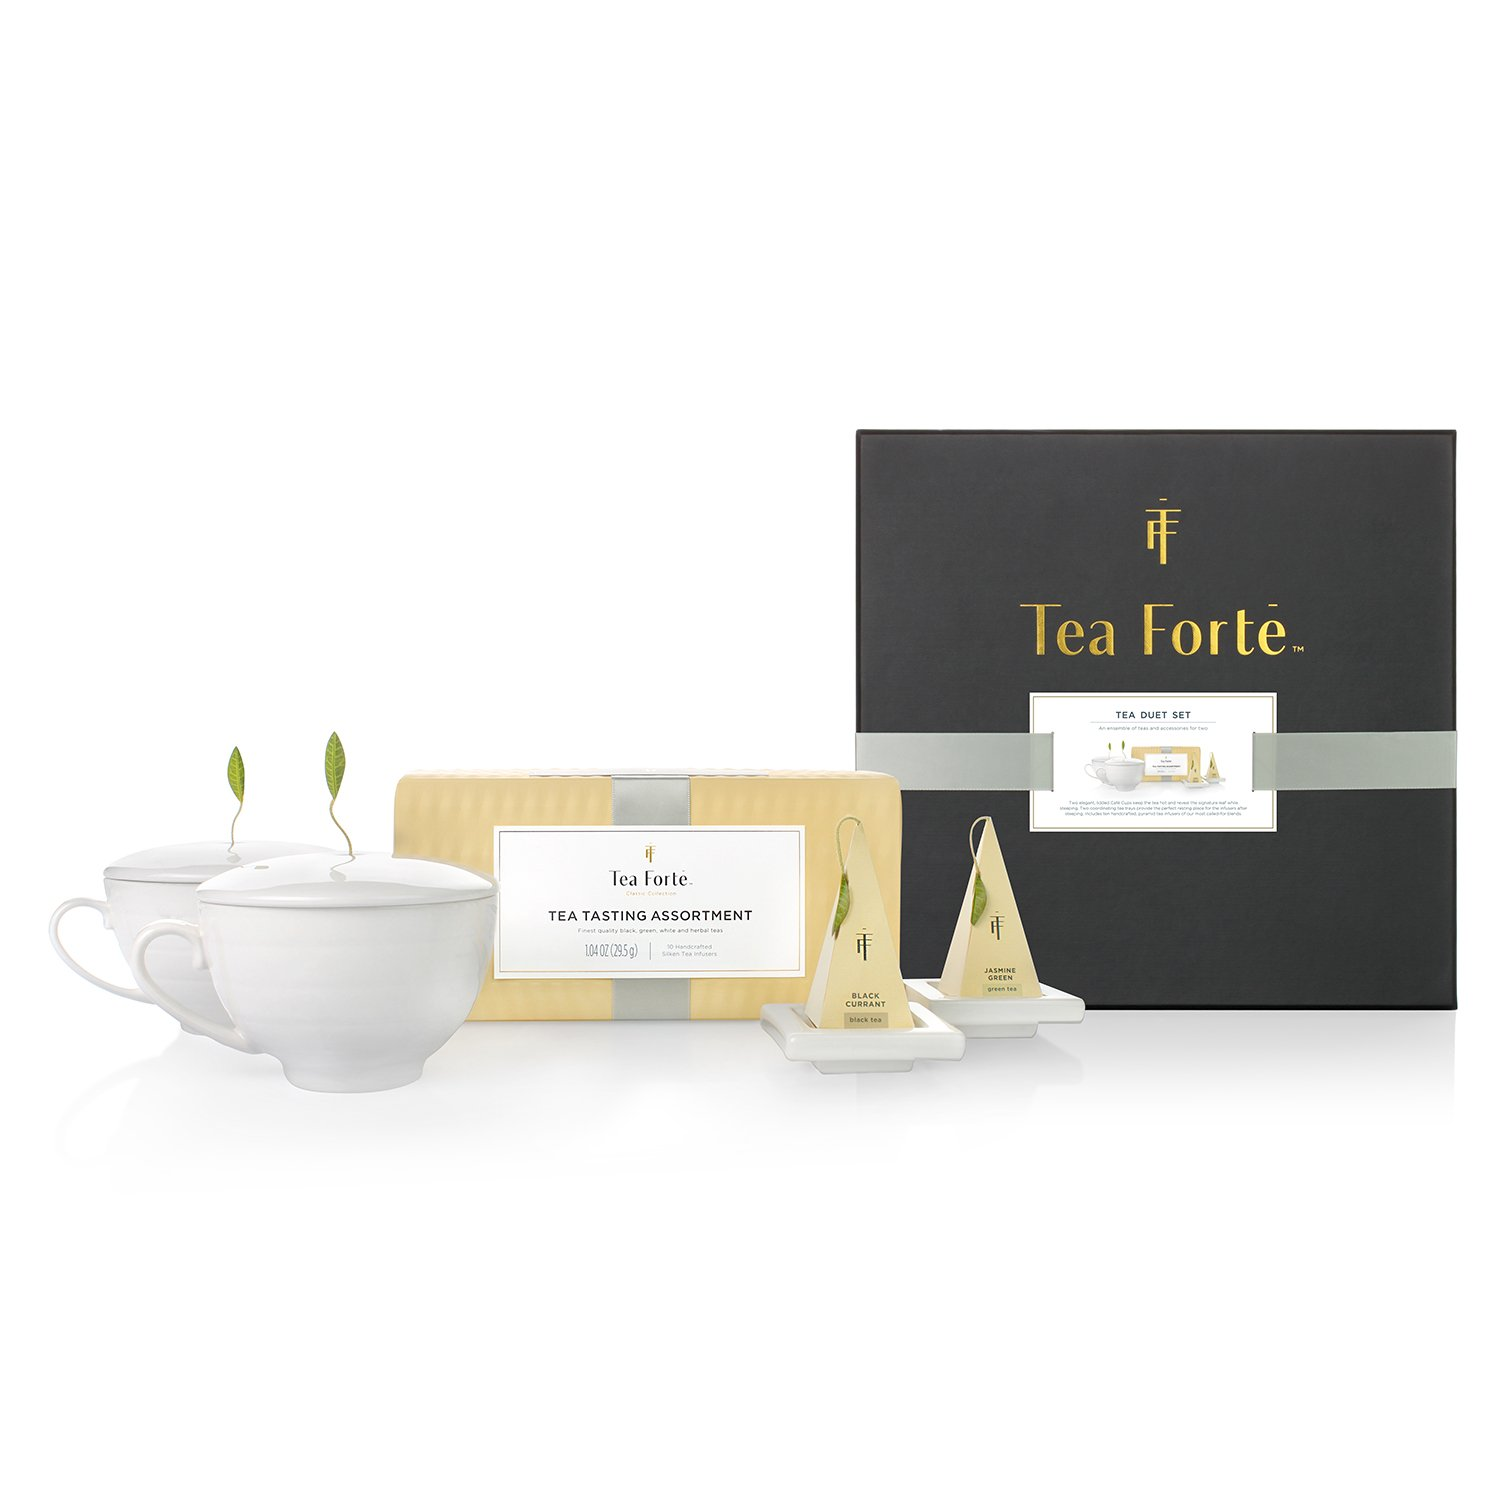 Tea Forte Duet Gift Set with Tea Tasting Petite Presentation Box, Two Cafe Cups with Lids and Two Tea Trays